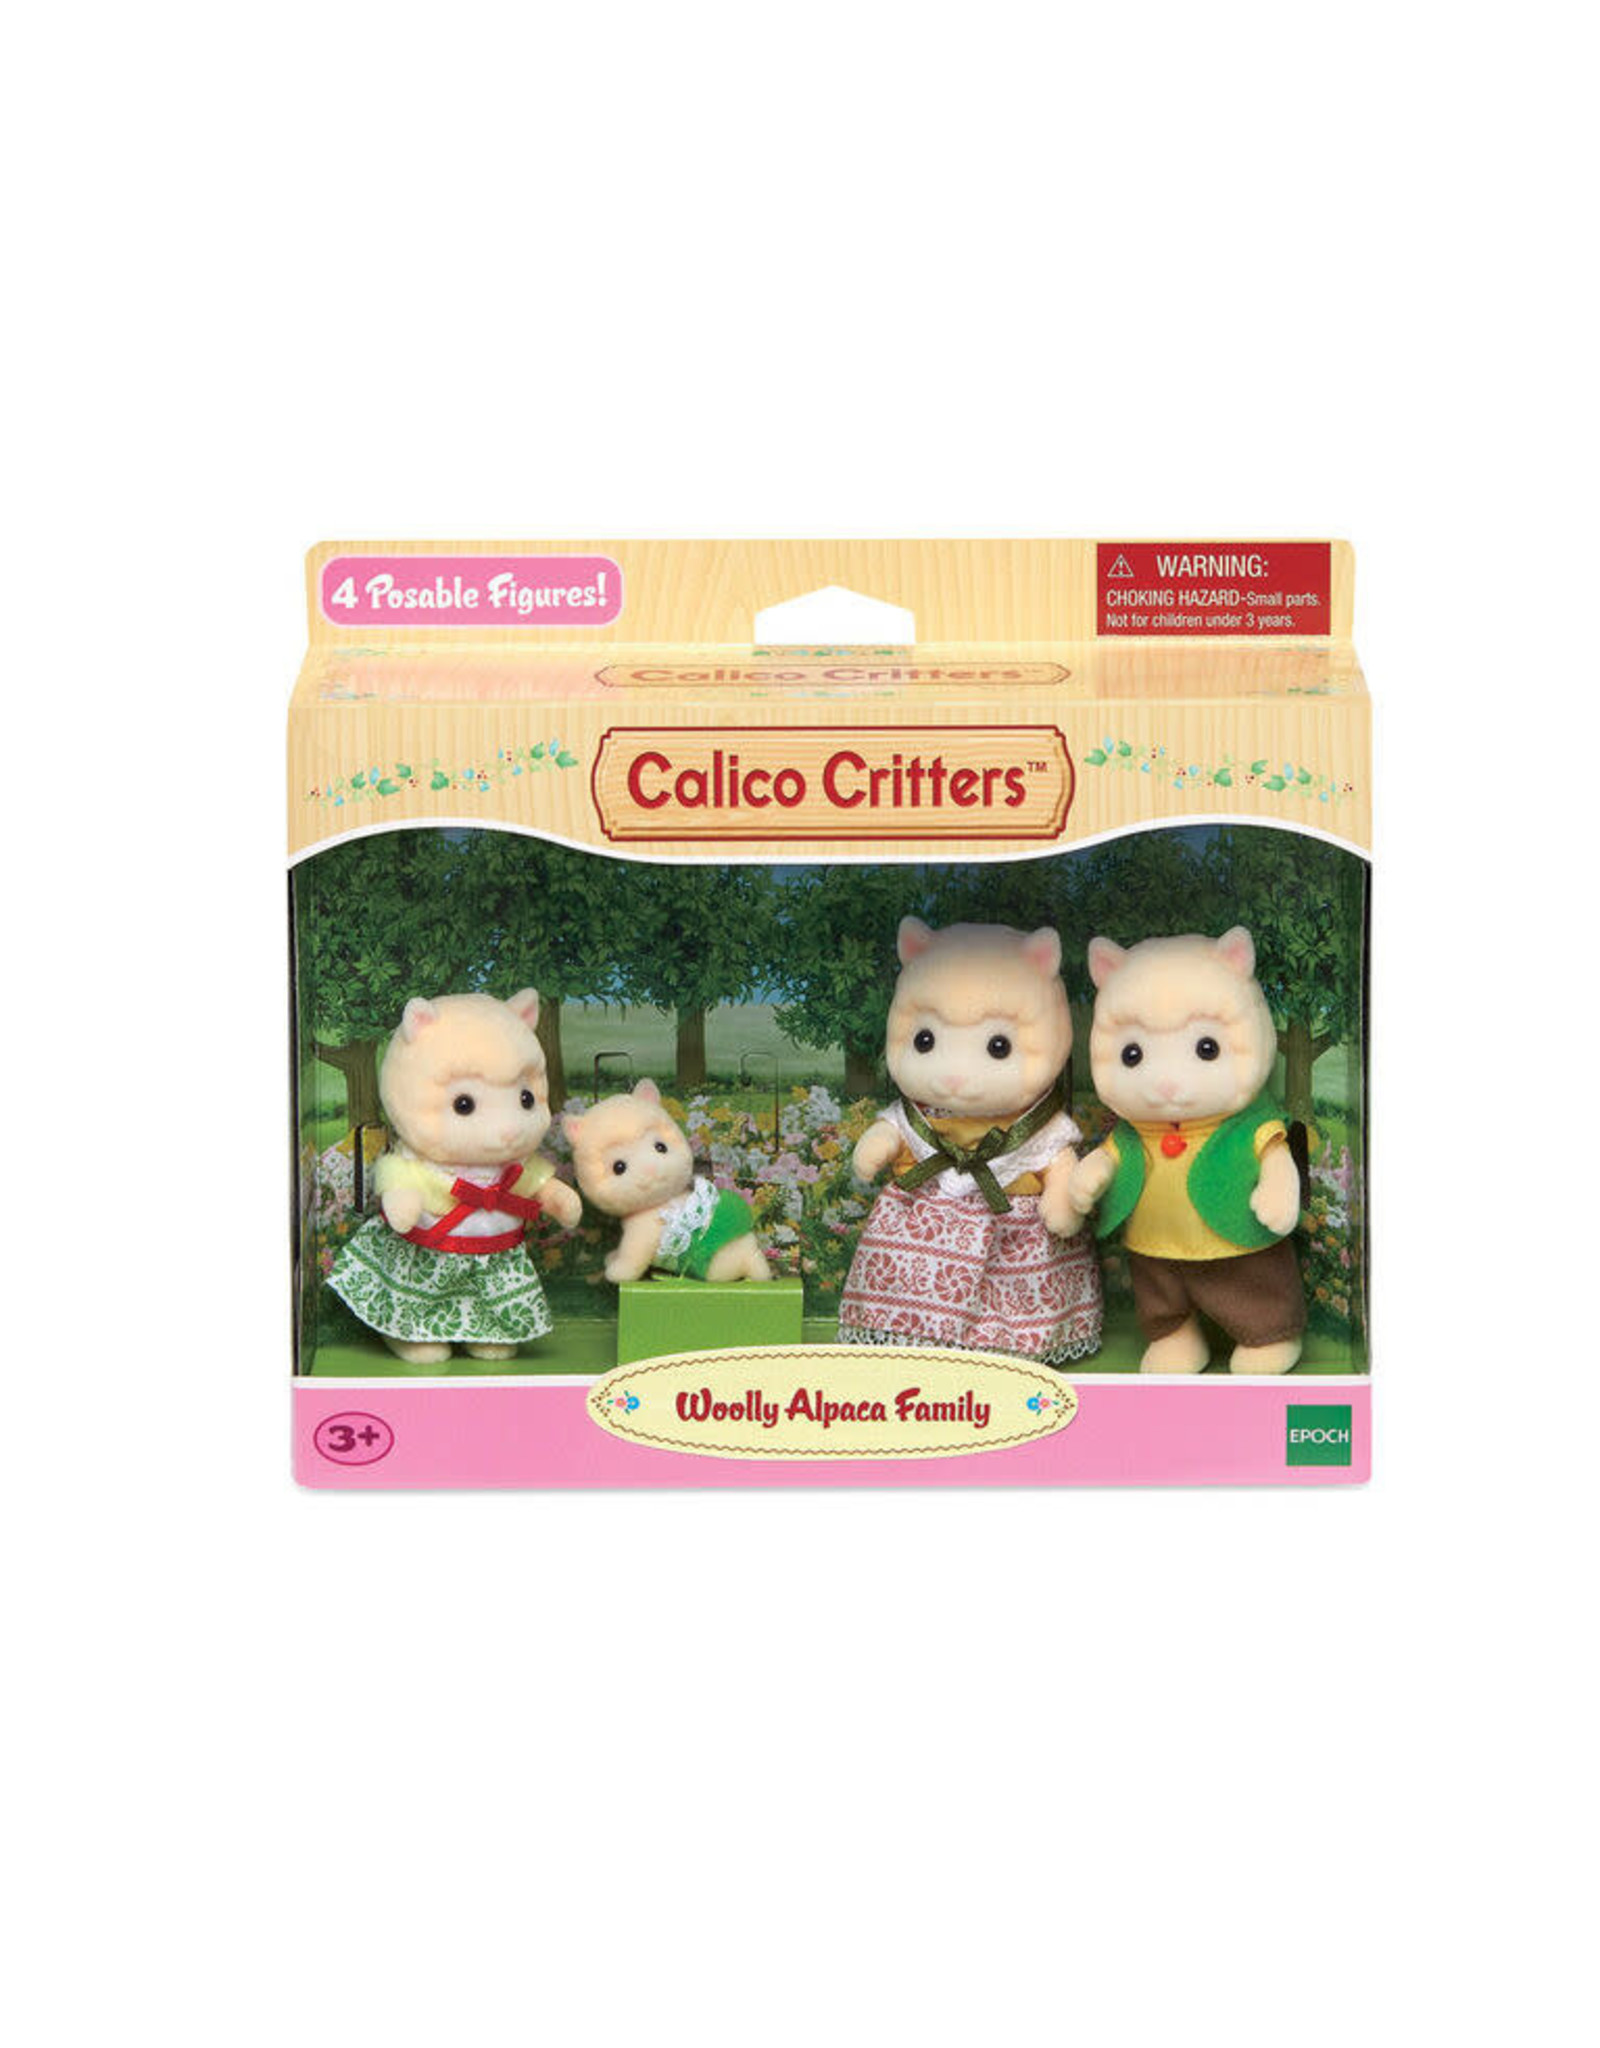 Calico Critters BL Woolly Alpaca Family Calico Critters